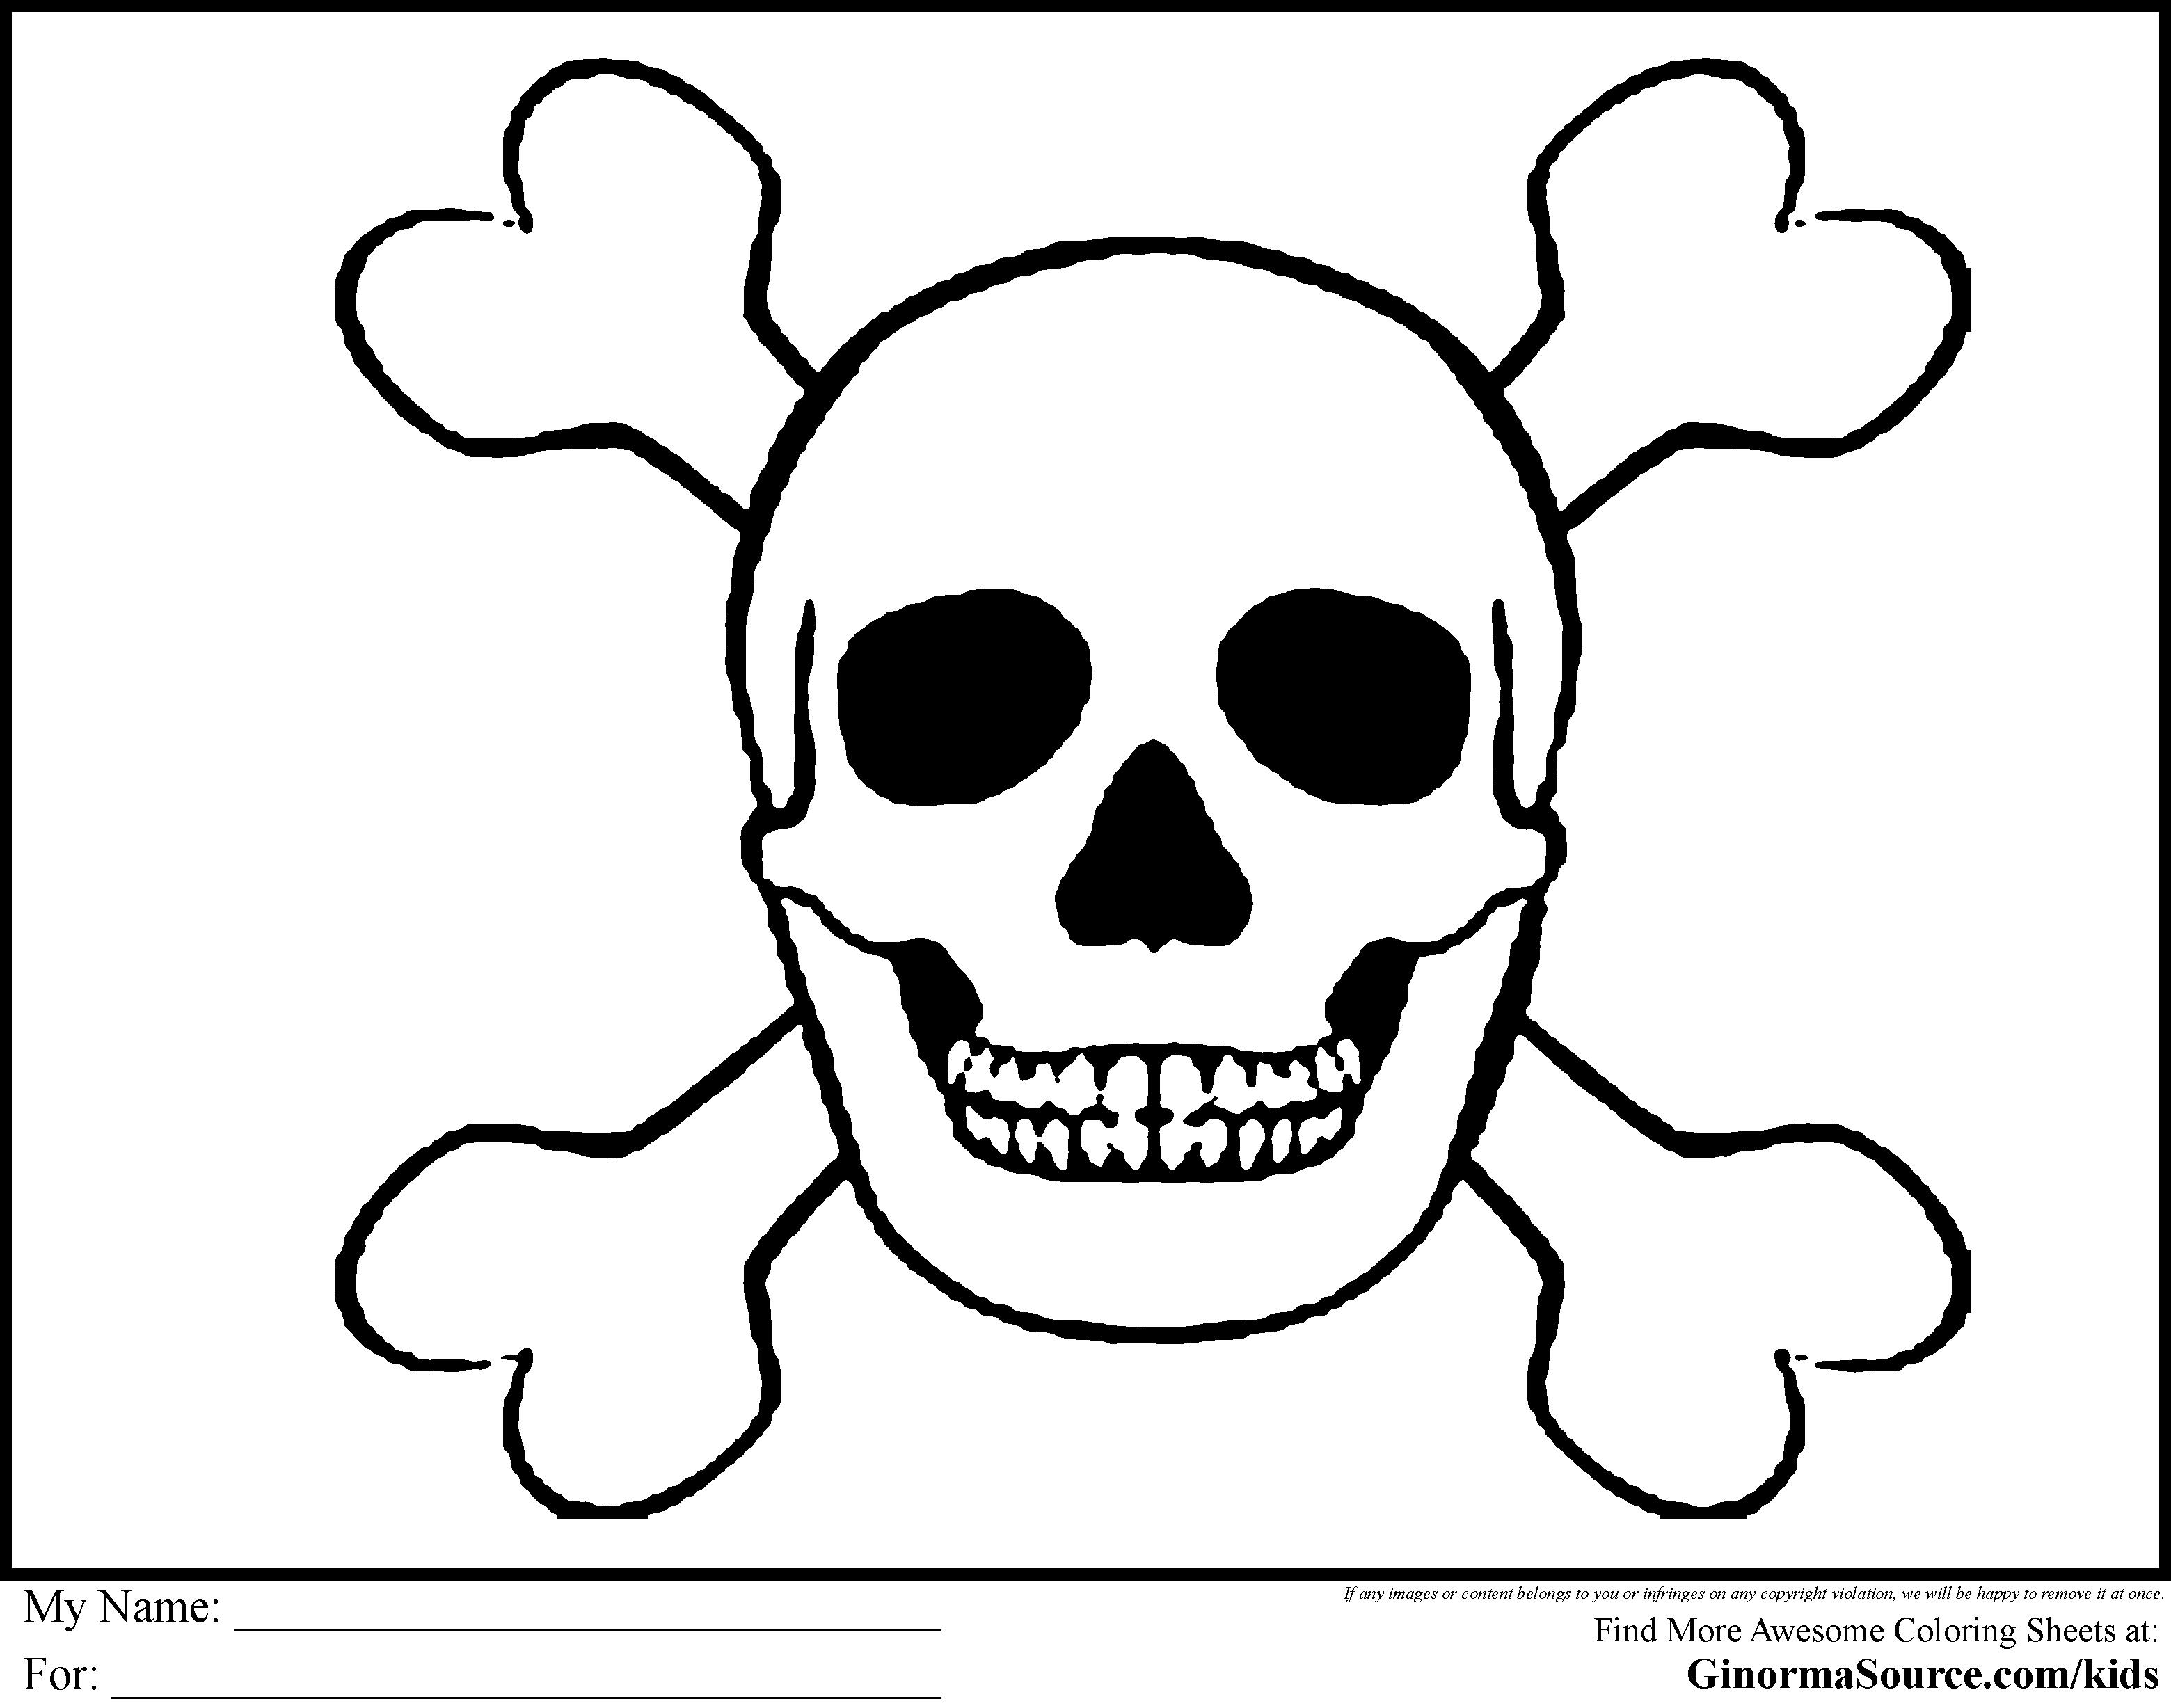 pirate images to colour free printable pirate coloring pages for kids to colour pirate images